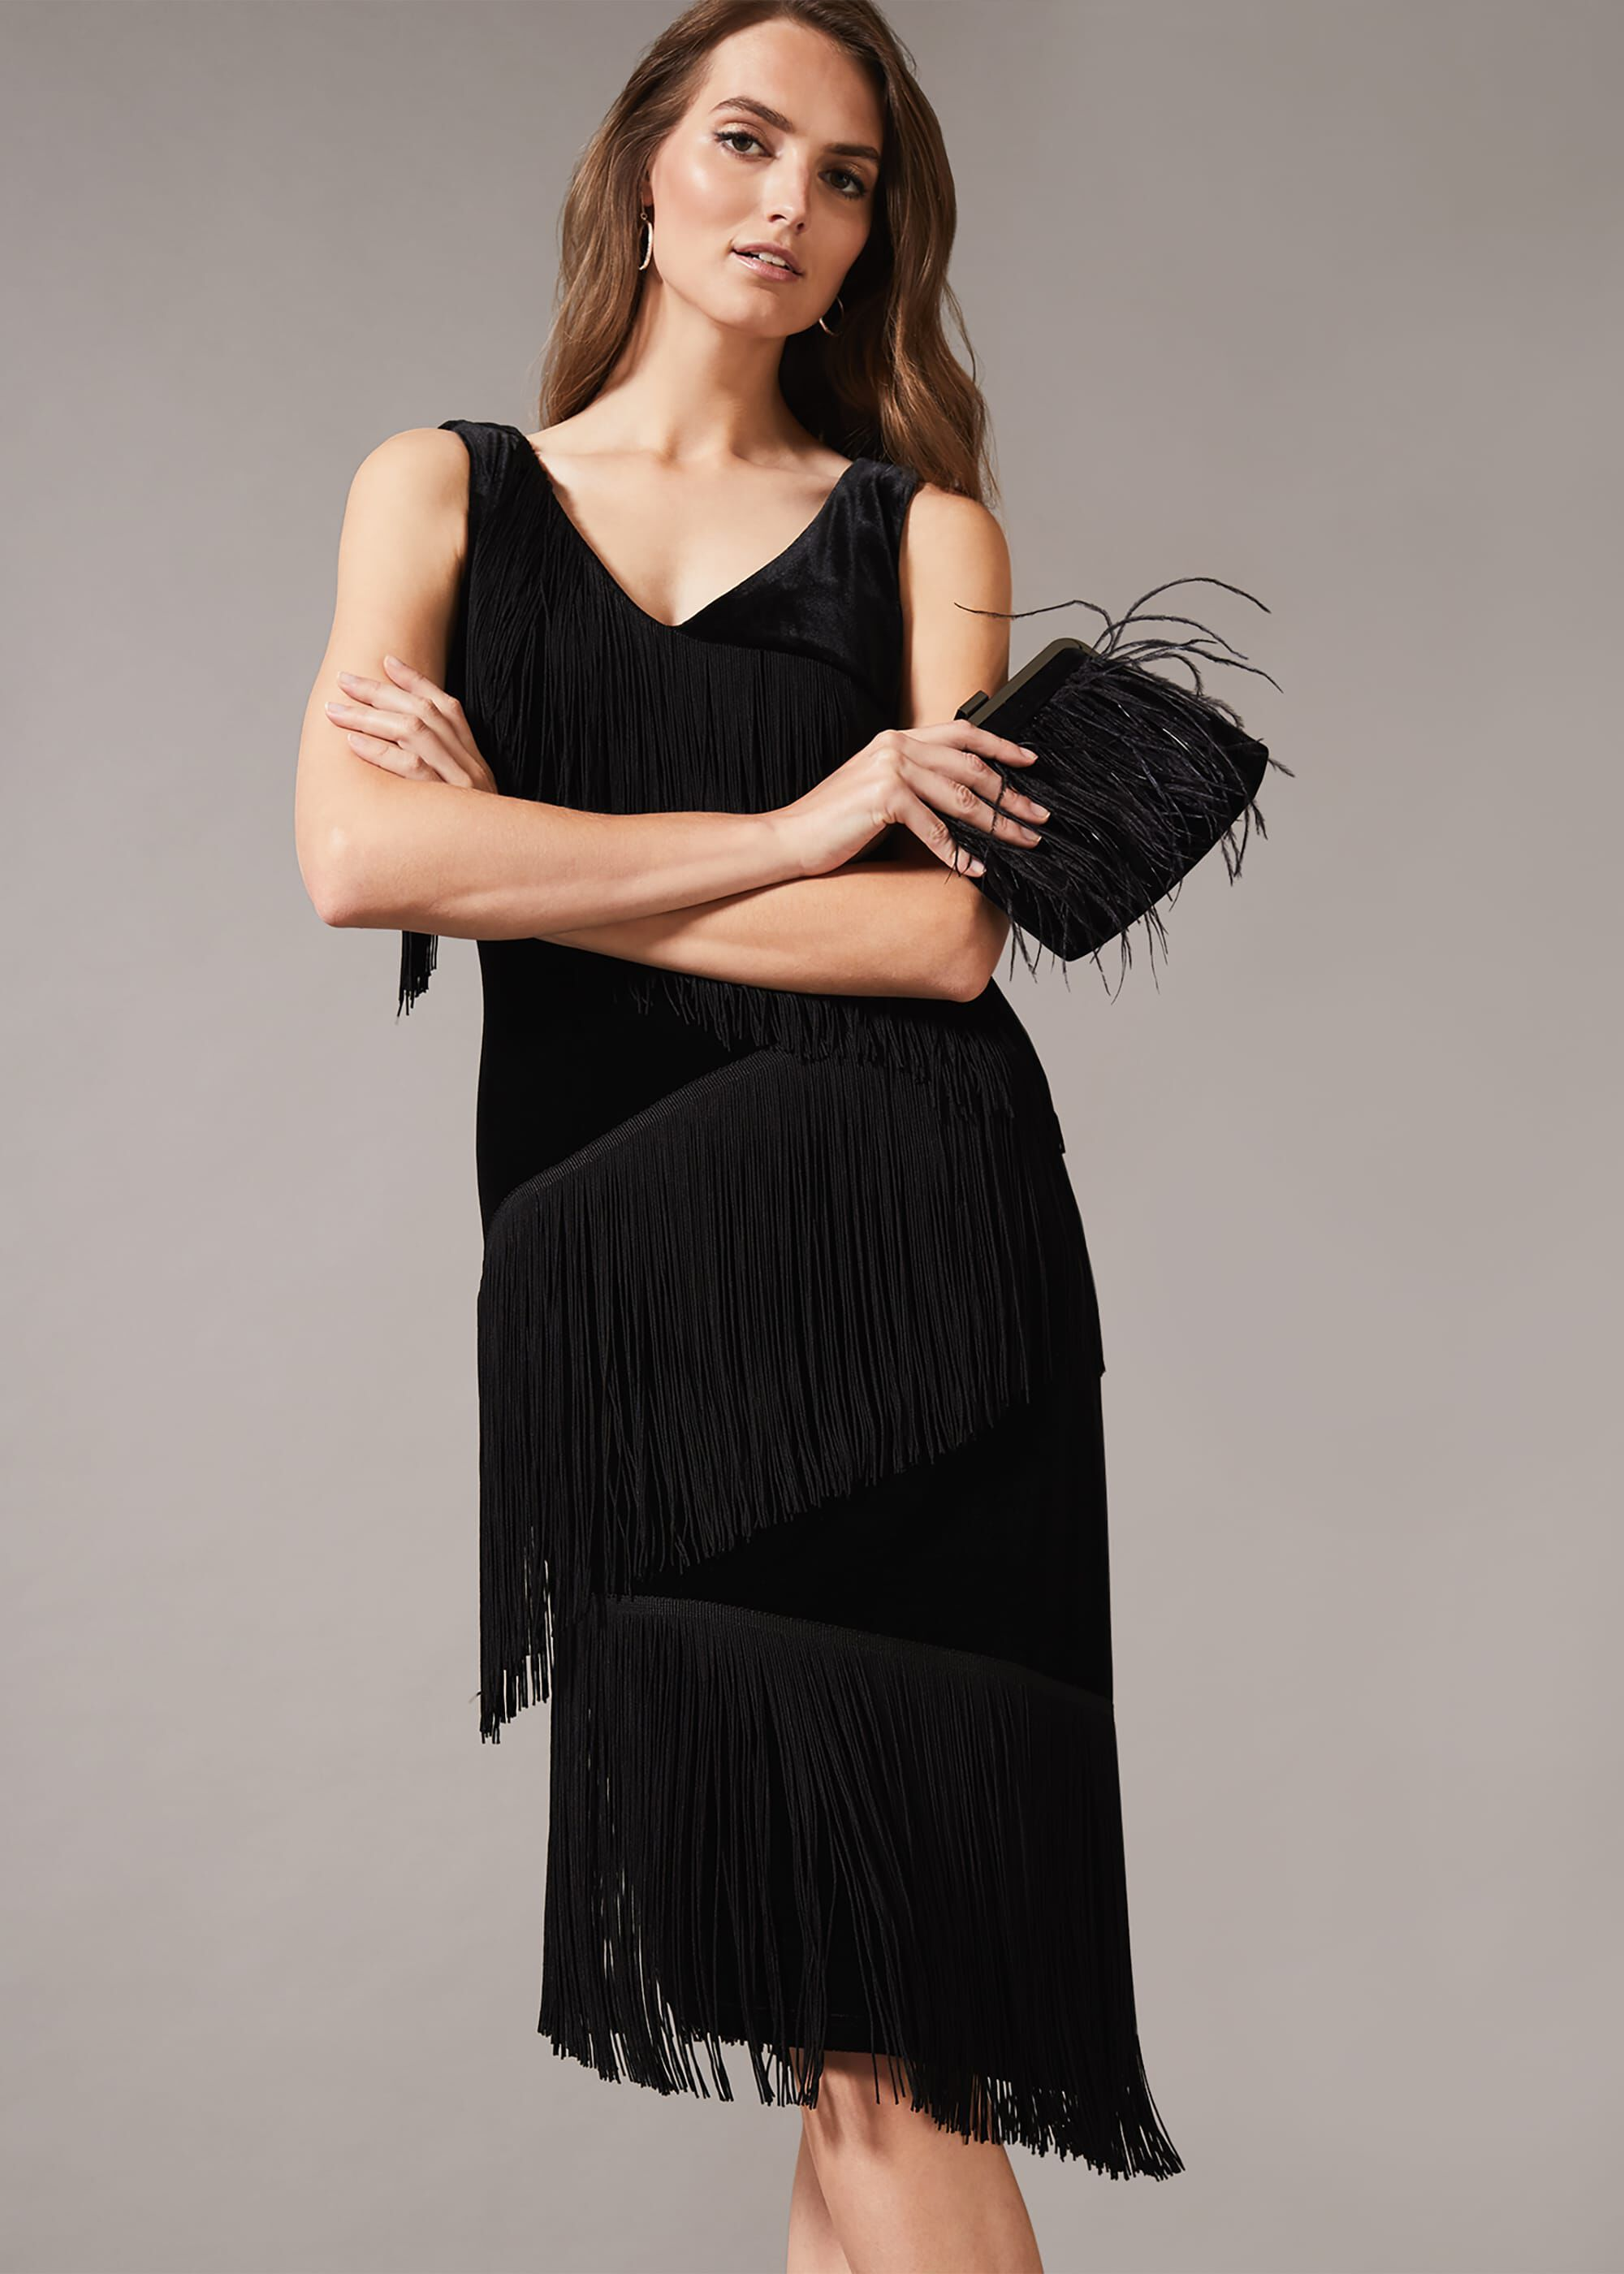 1920s Dresses UK | Flapper, Gatsby, Downton Abbey Dress Phase Eight Miya Velvet Fringe Dress Black Shift Occasion Dress £99.00 AT vintagedancer.com